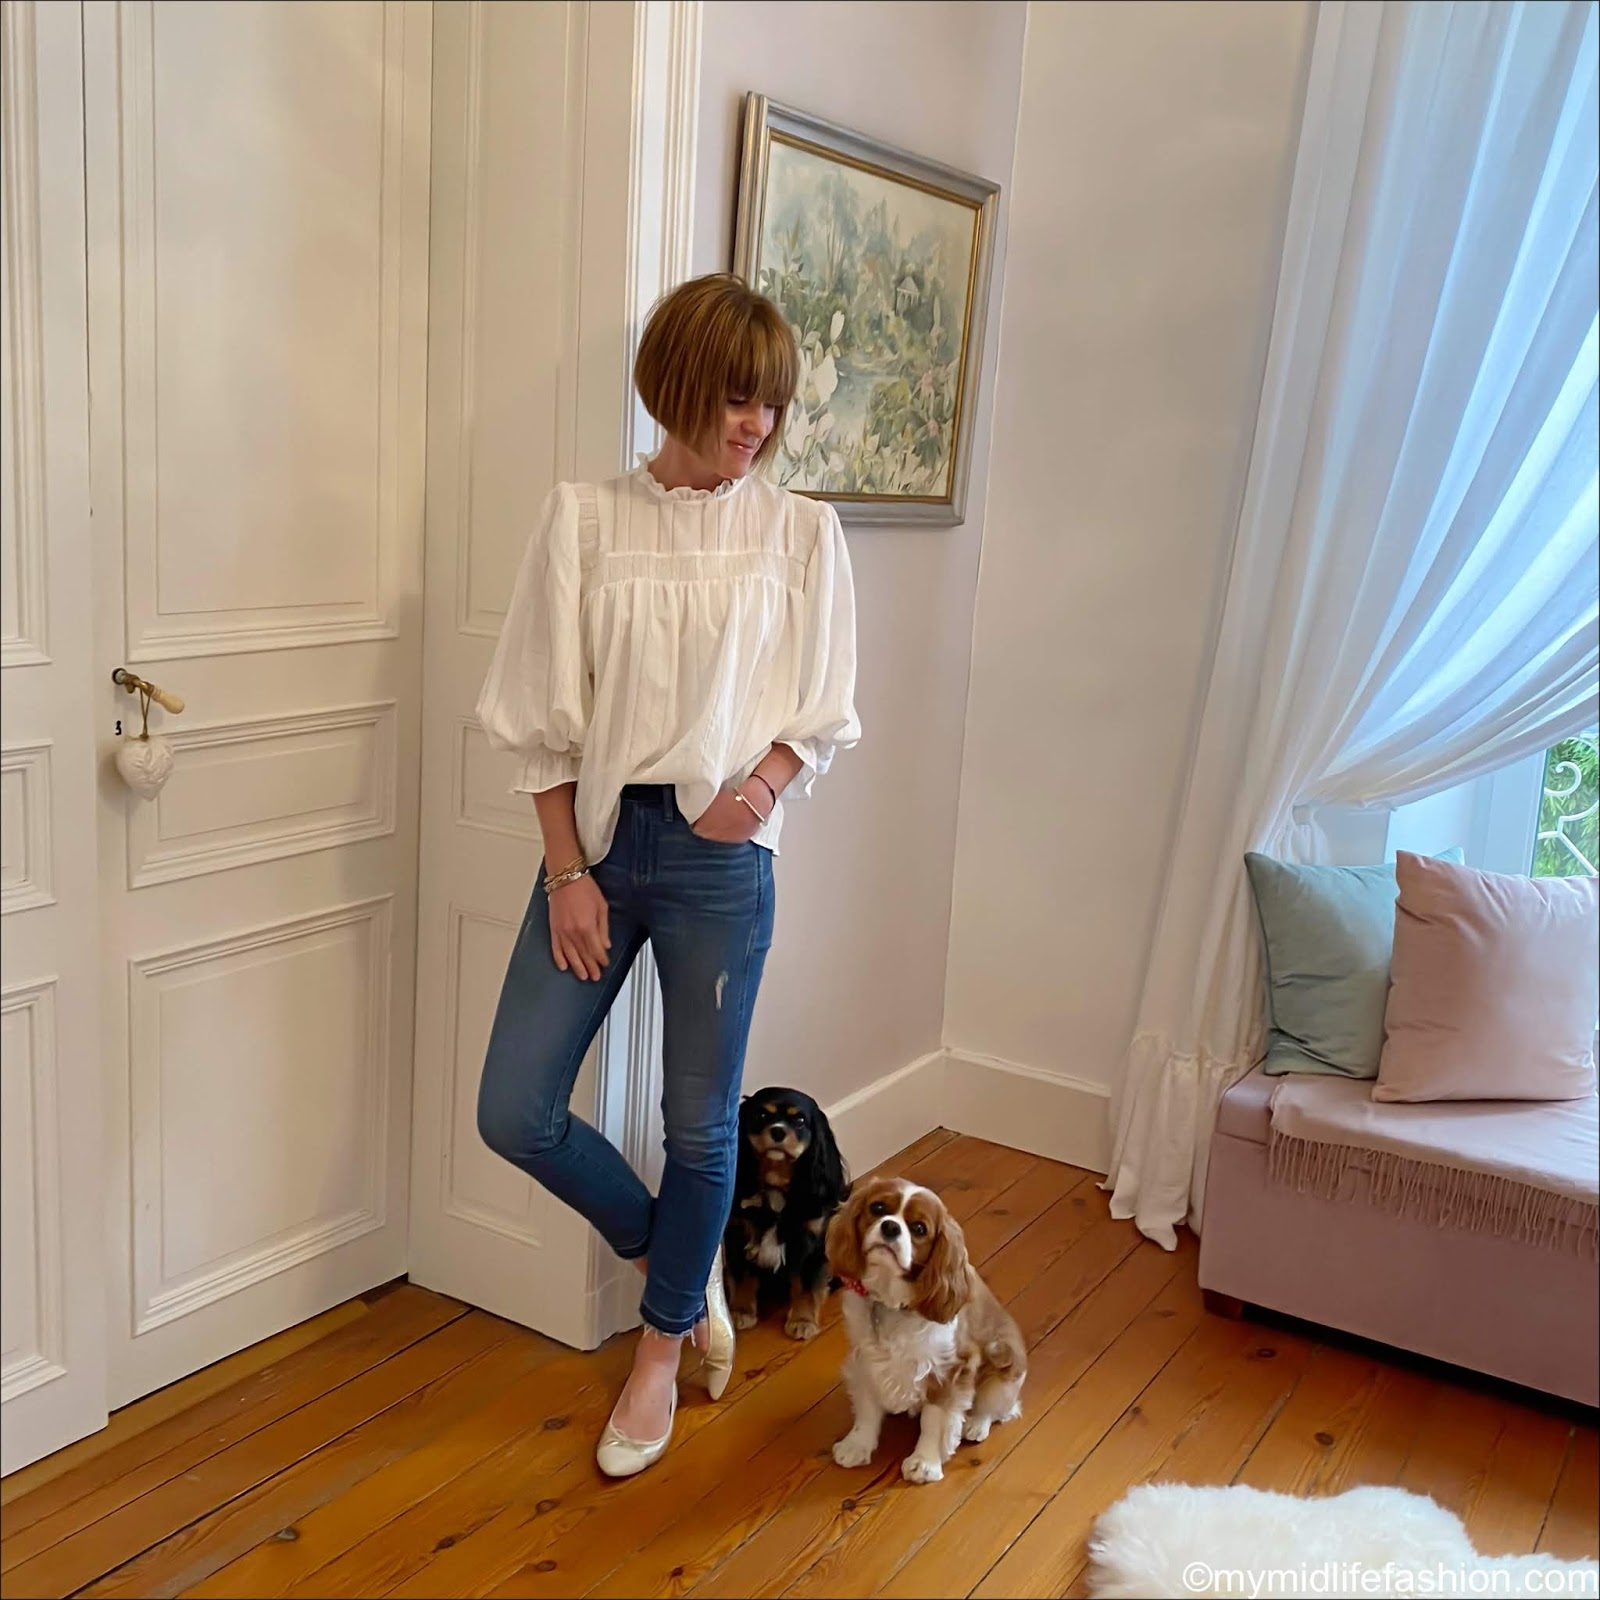 my midlife fashion, zara white embroidered blouse, j crew skinny jeans, j crew pointed toe two tone ballet pumps